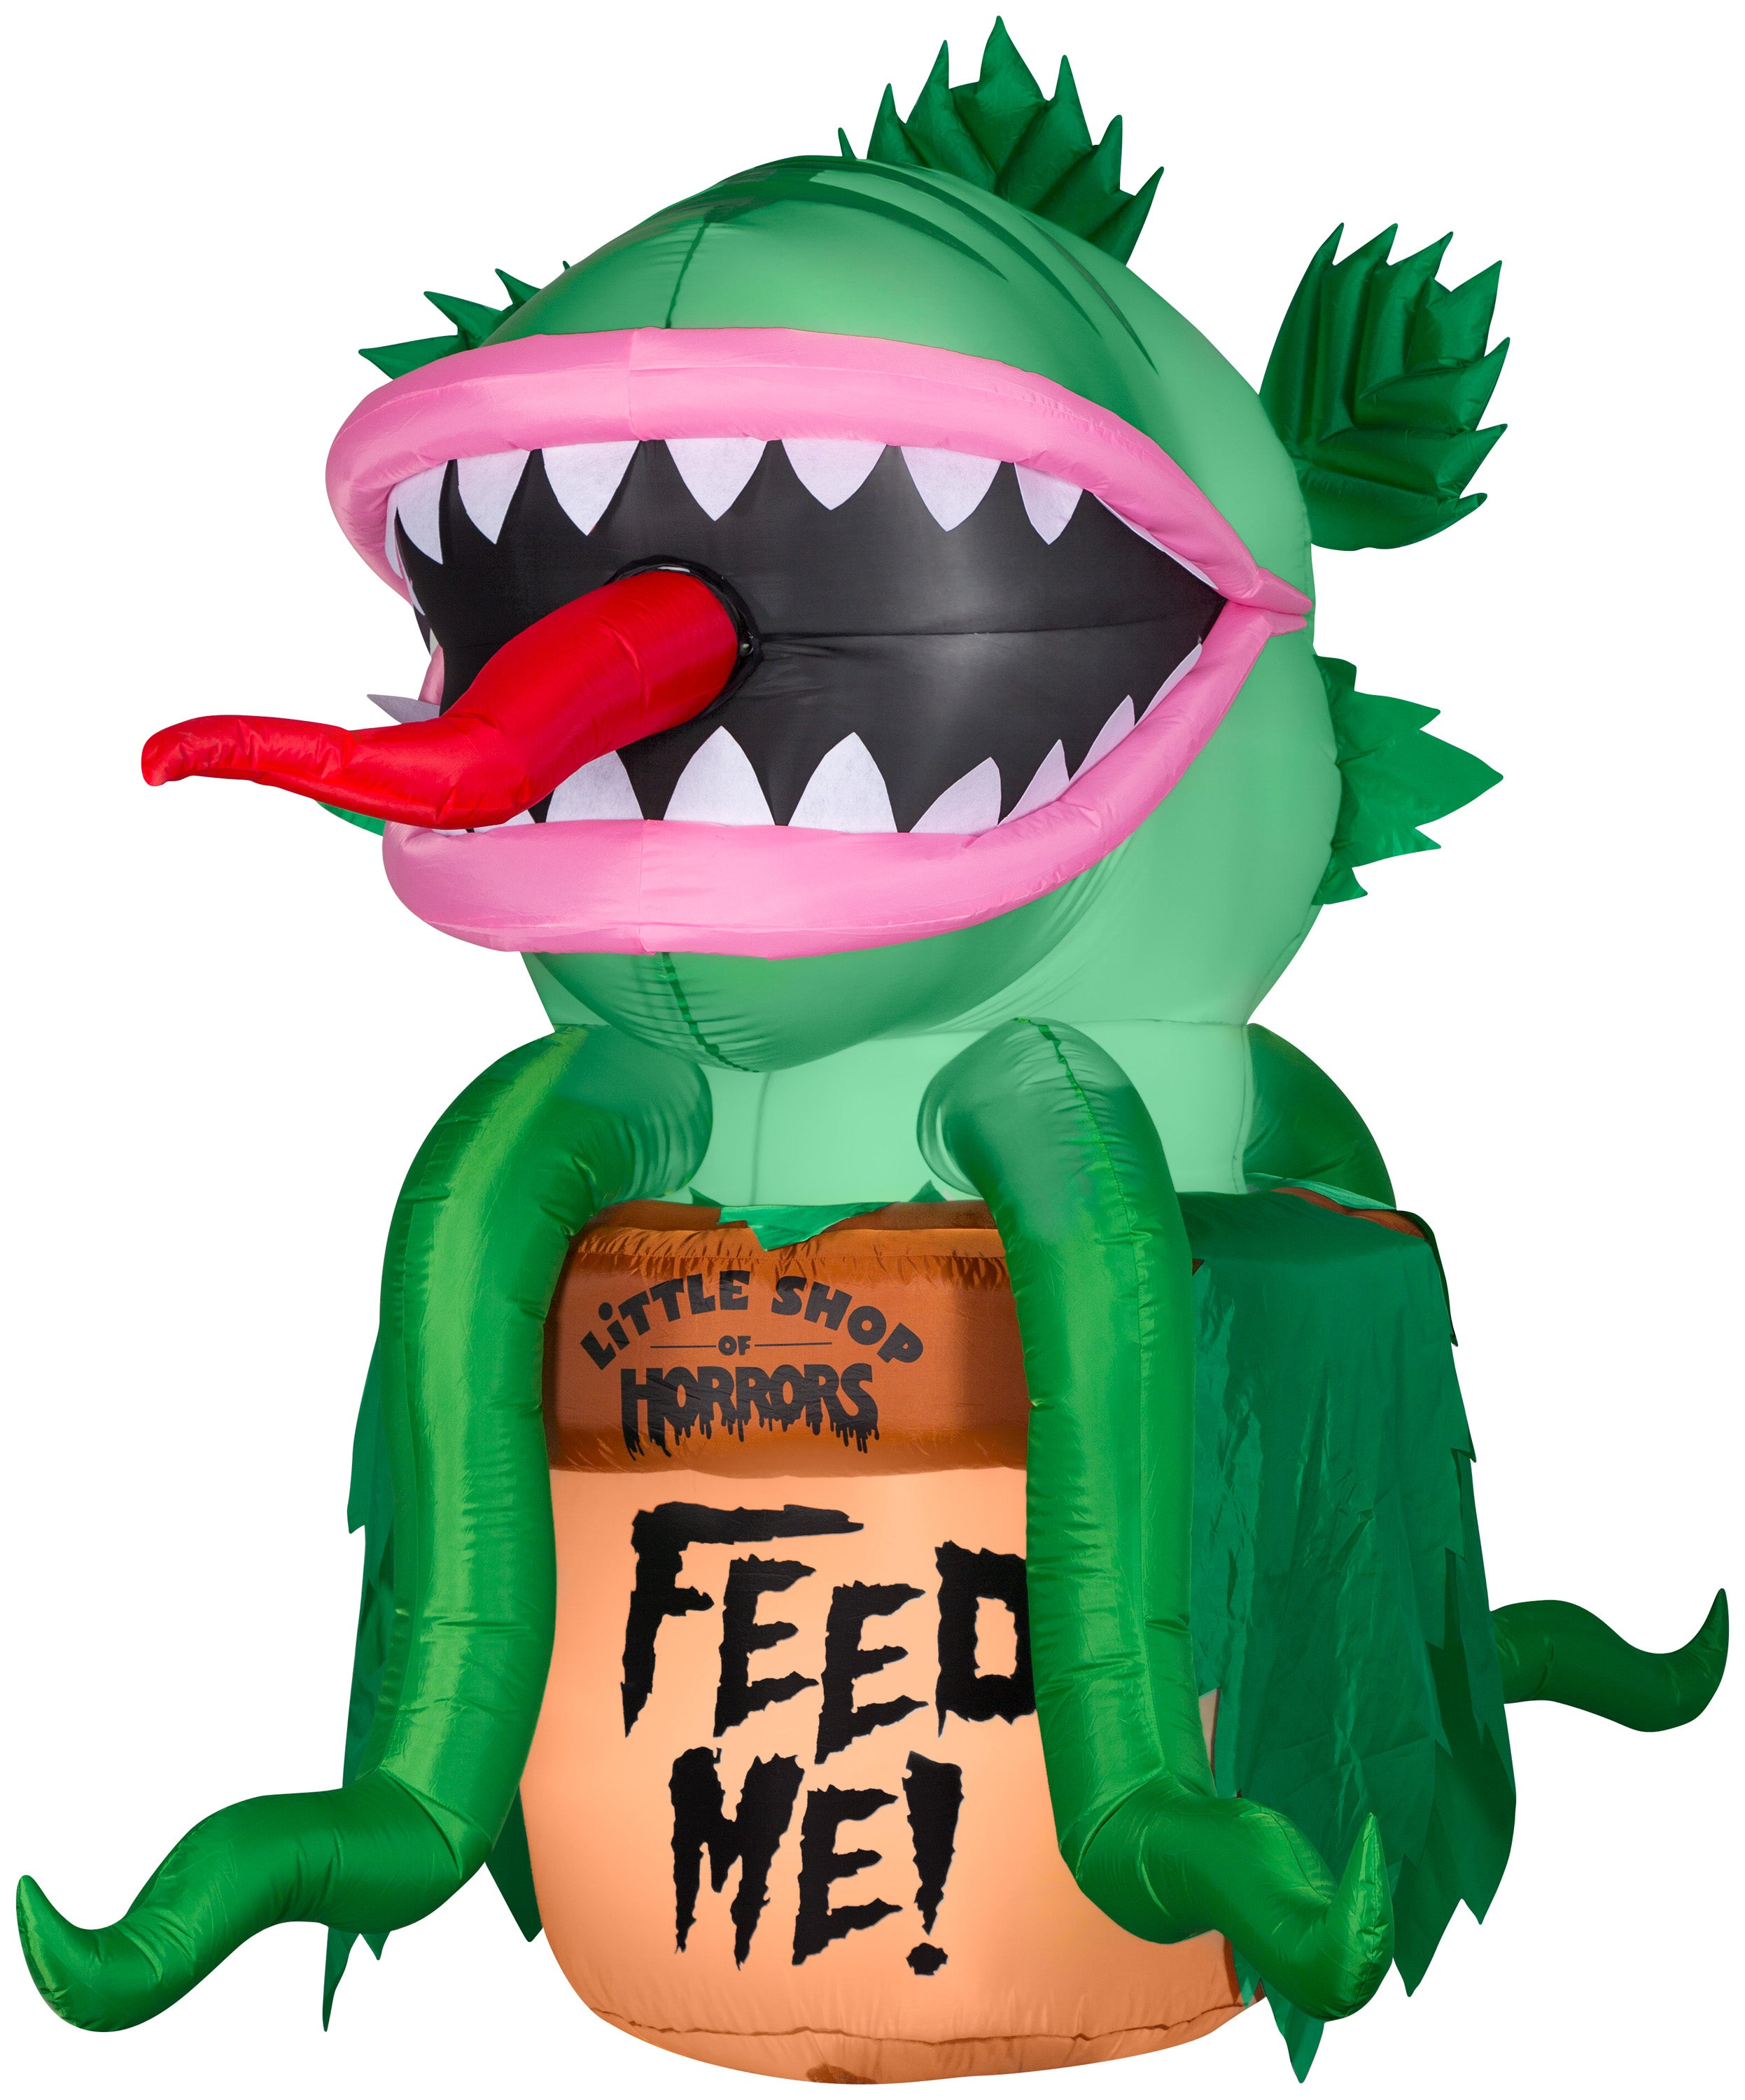 Animated Airblown Inflatable Audrey from Little Shop of Horrors